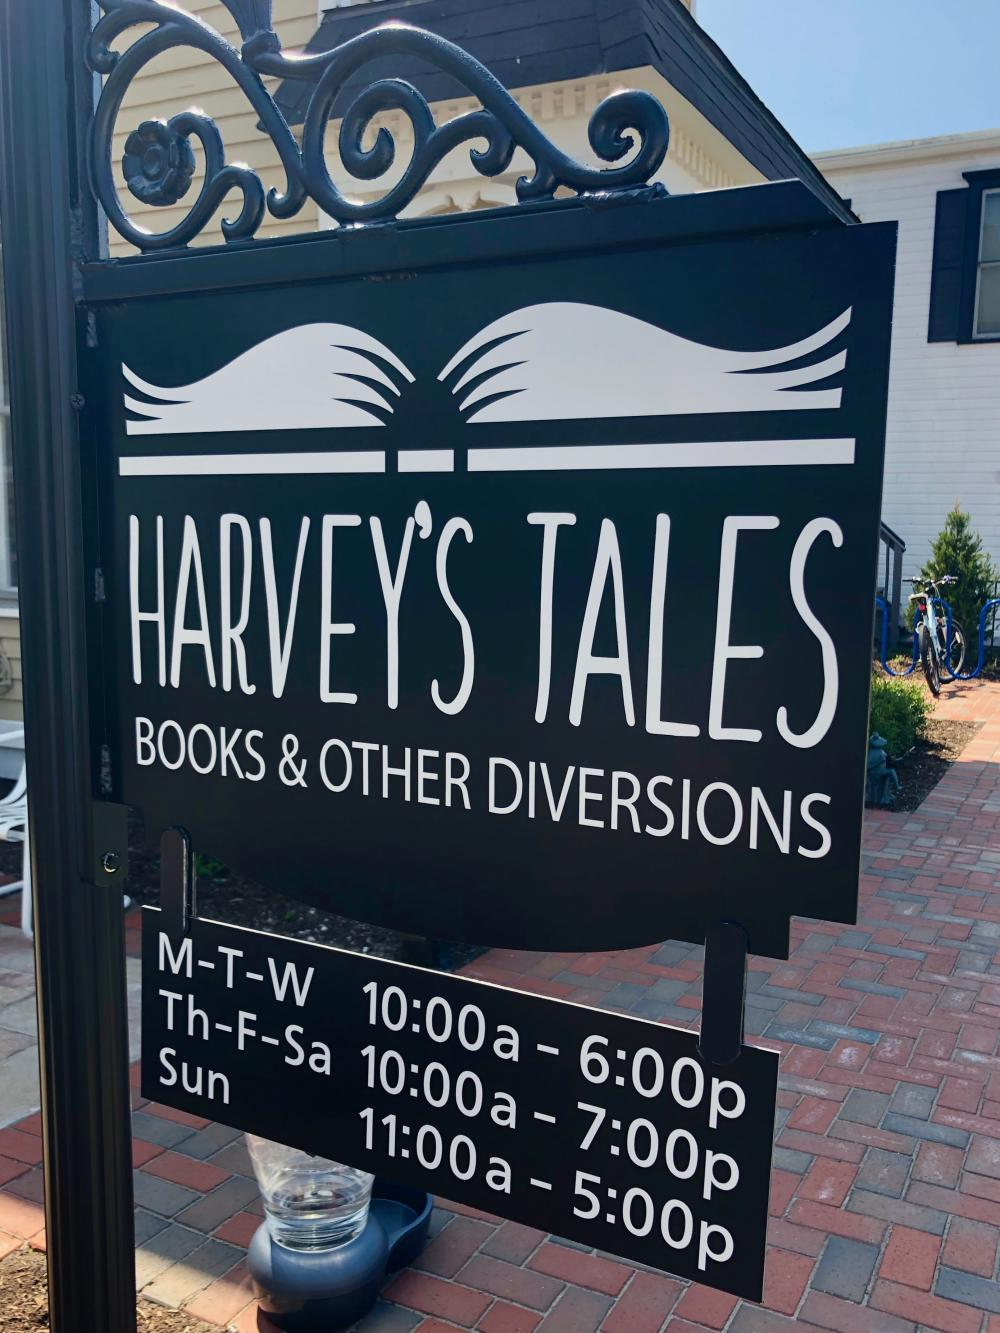 Harvey's Tales, books & other diversions